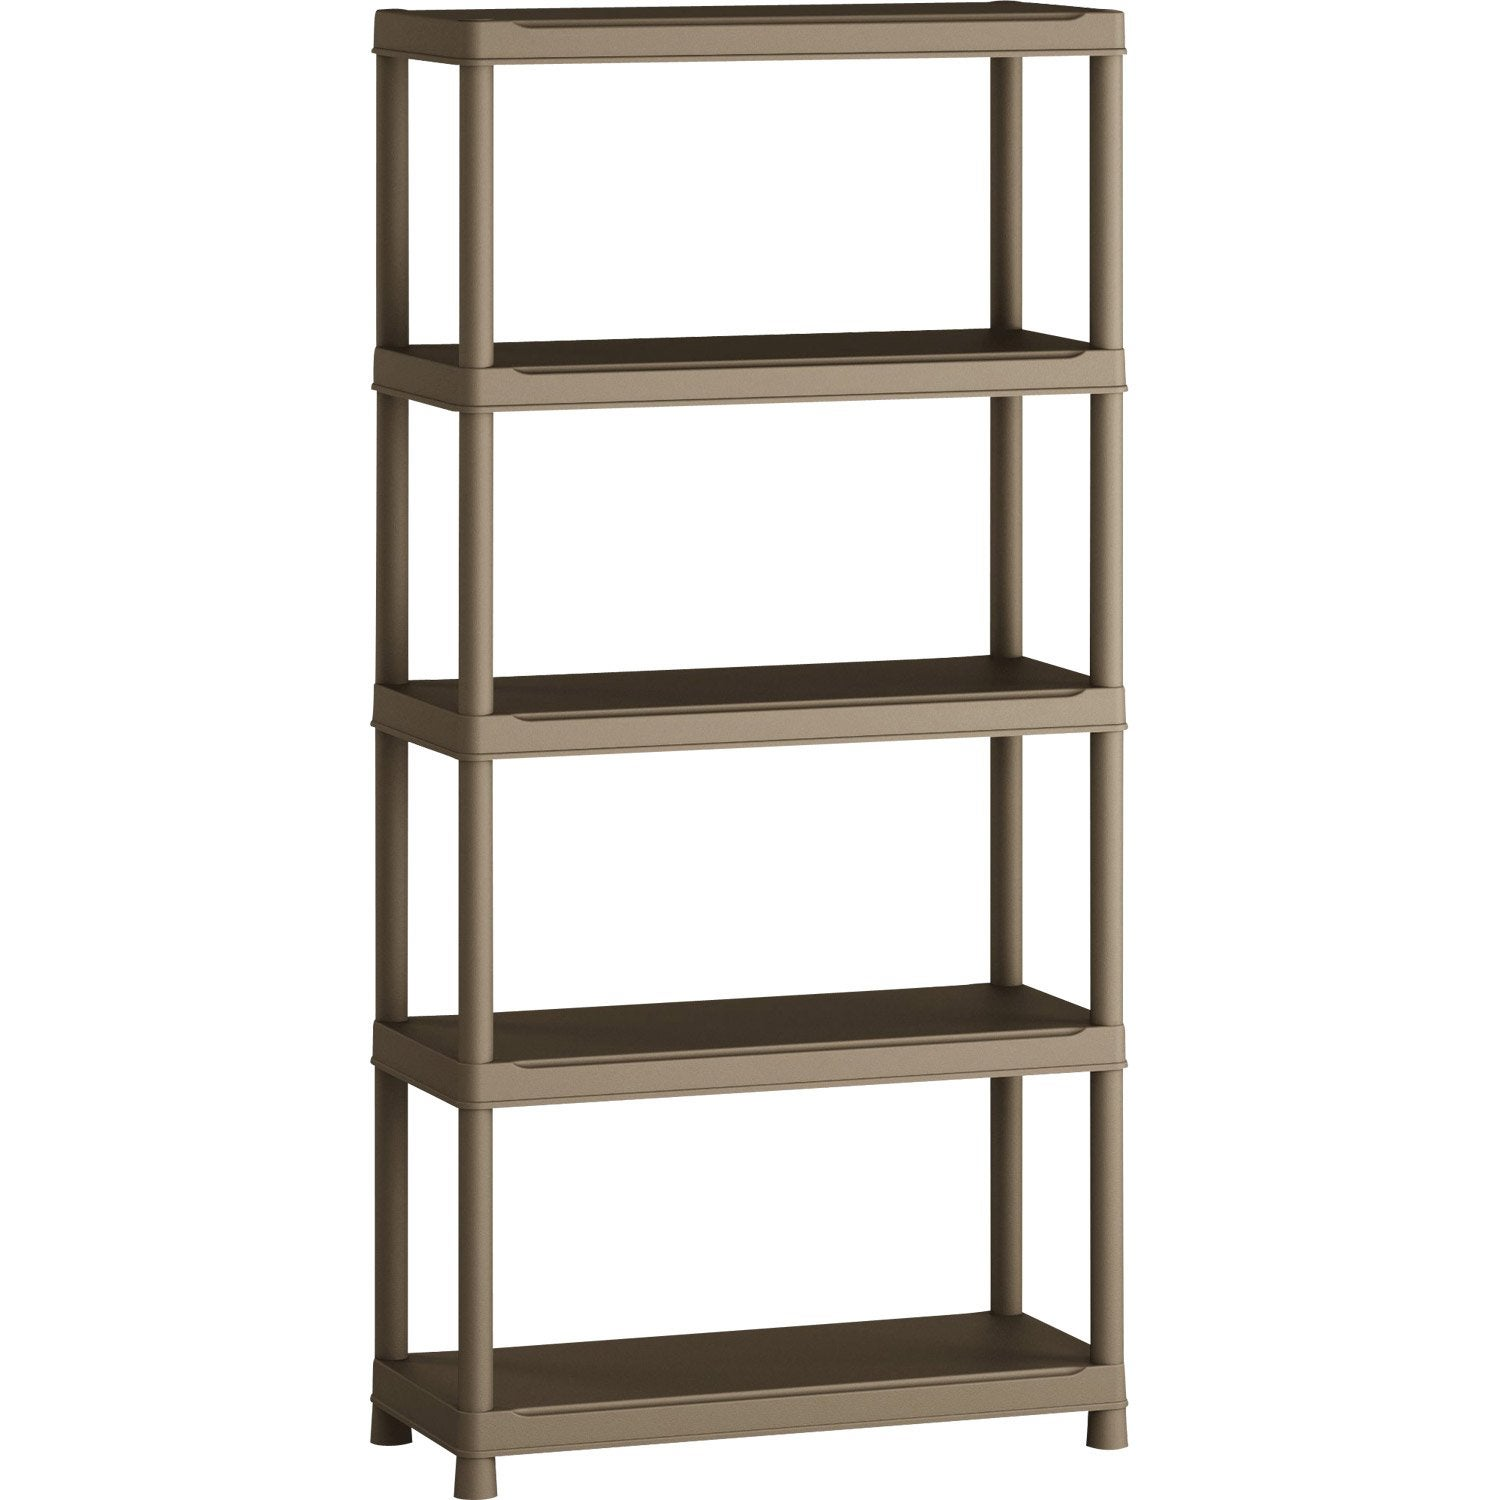 Etag re r sine spaceo 5 tablettes terre l90xh181xp40 cm - Etagere modulable leroy merlin ...